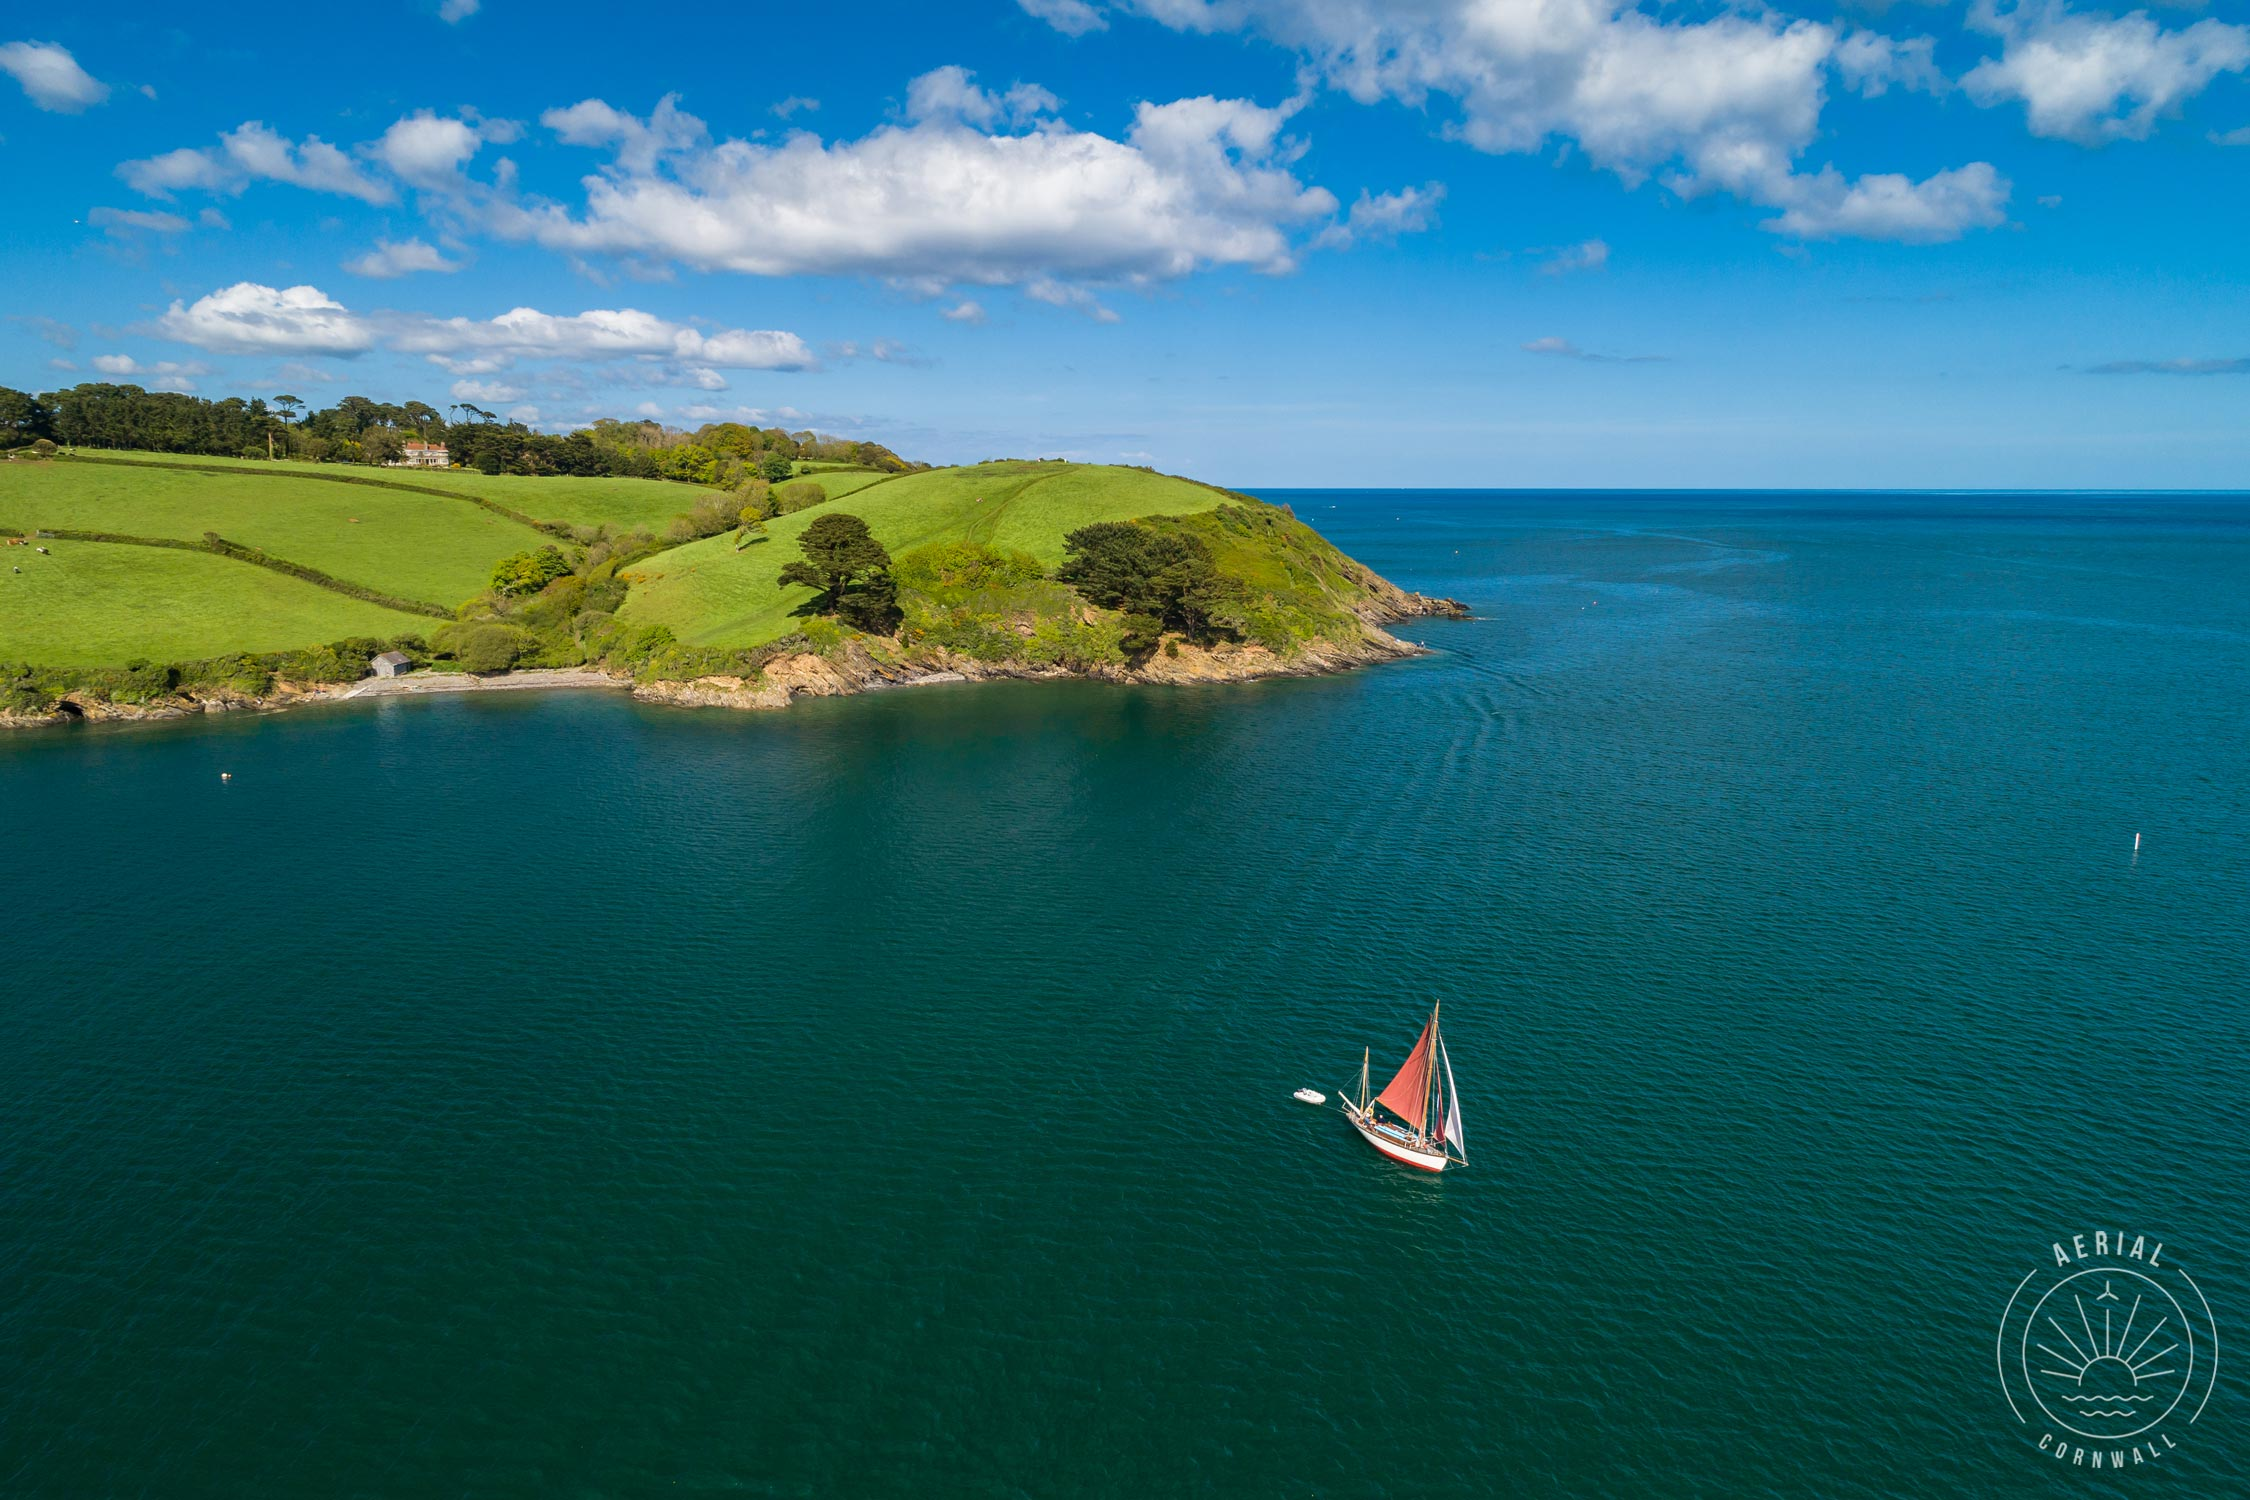 Location: Helford River